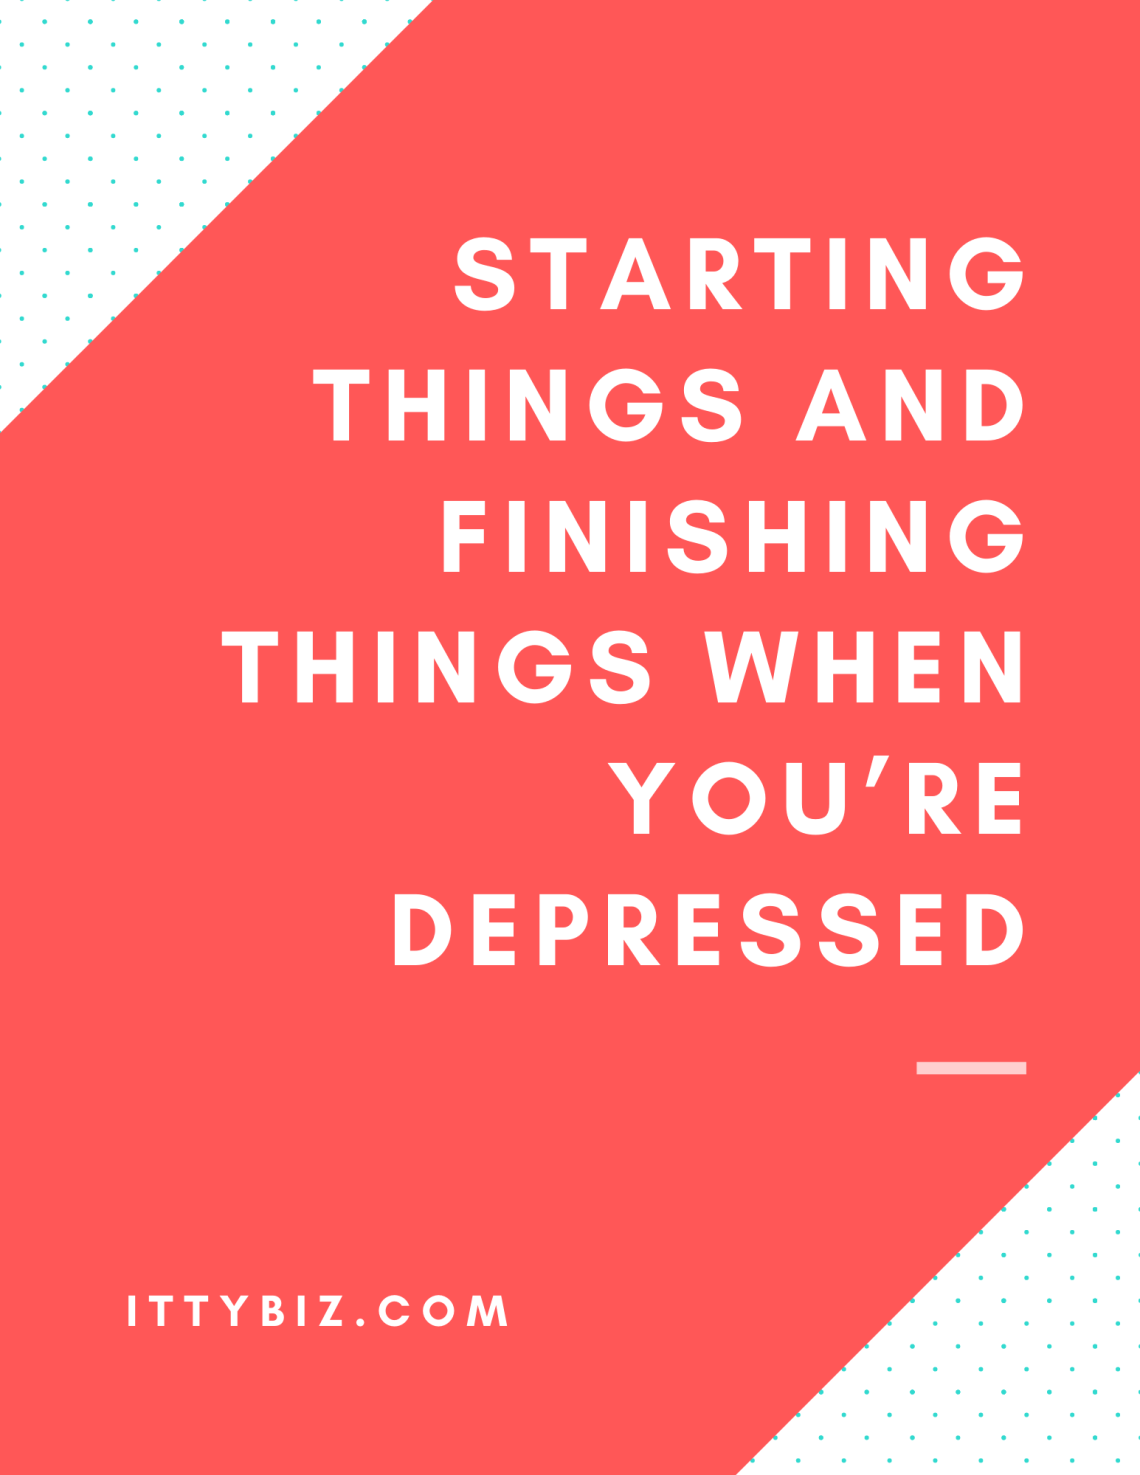 Starting Things and Finishing Things When You're Depressed